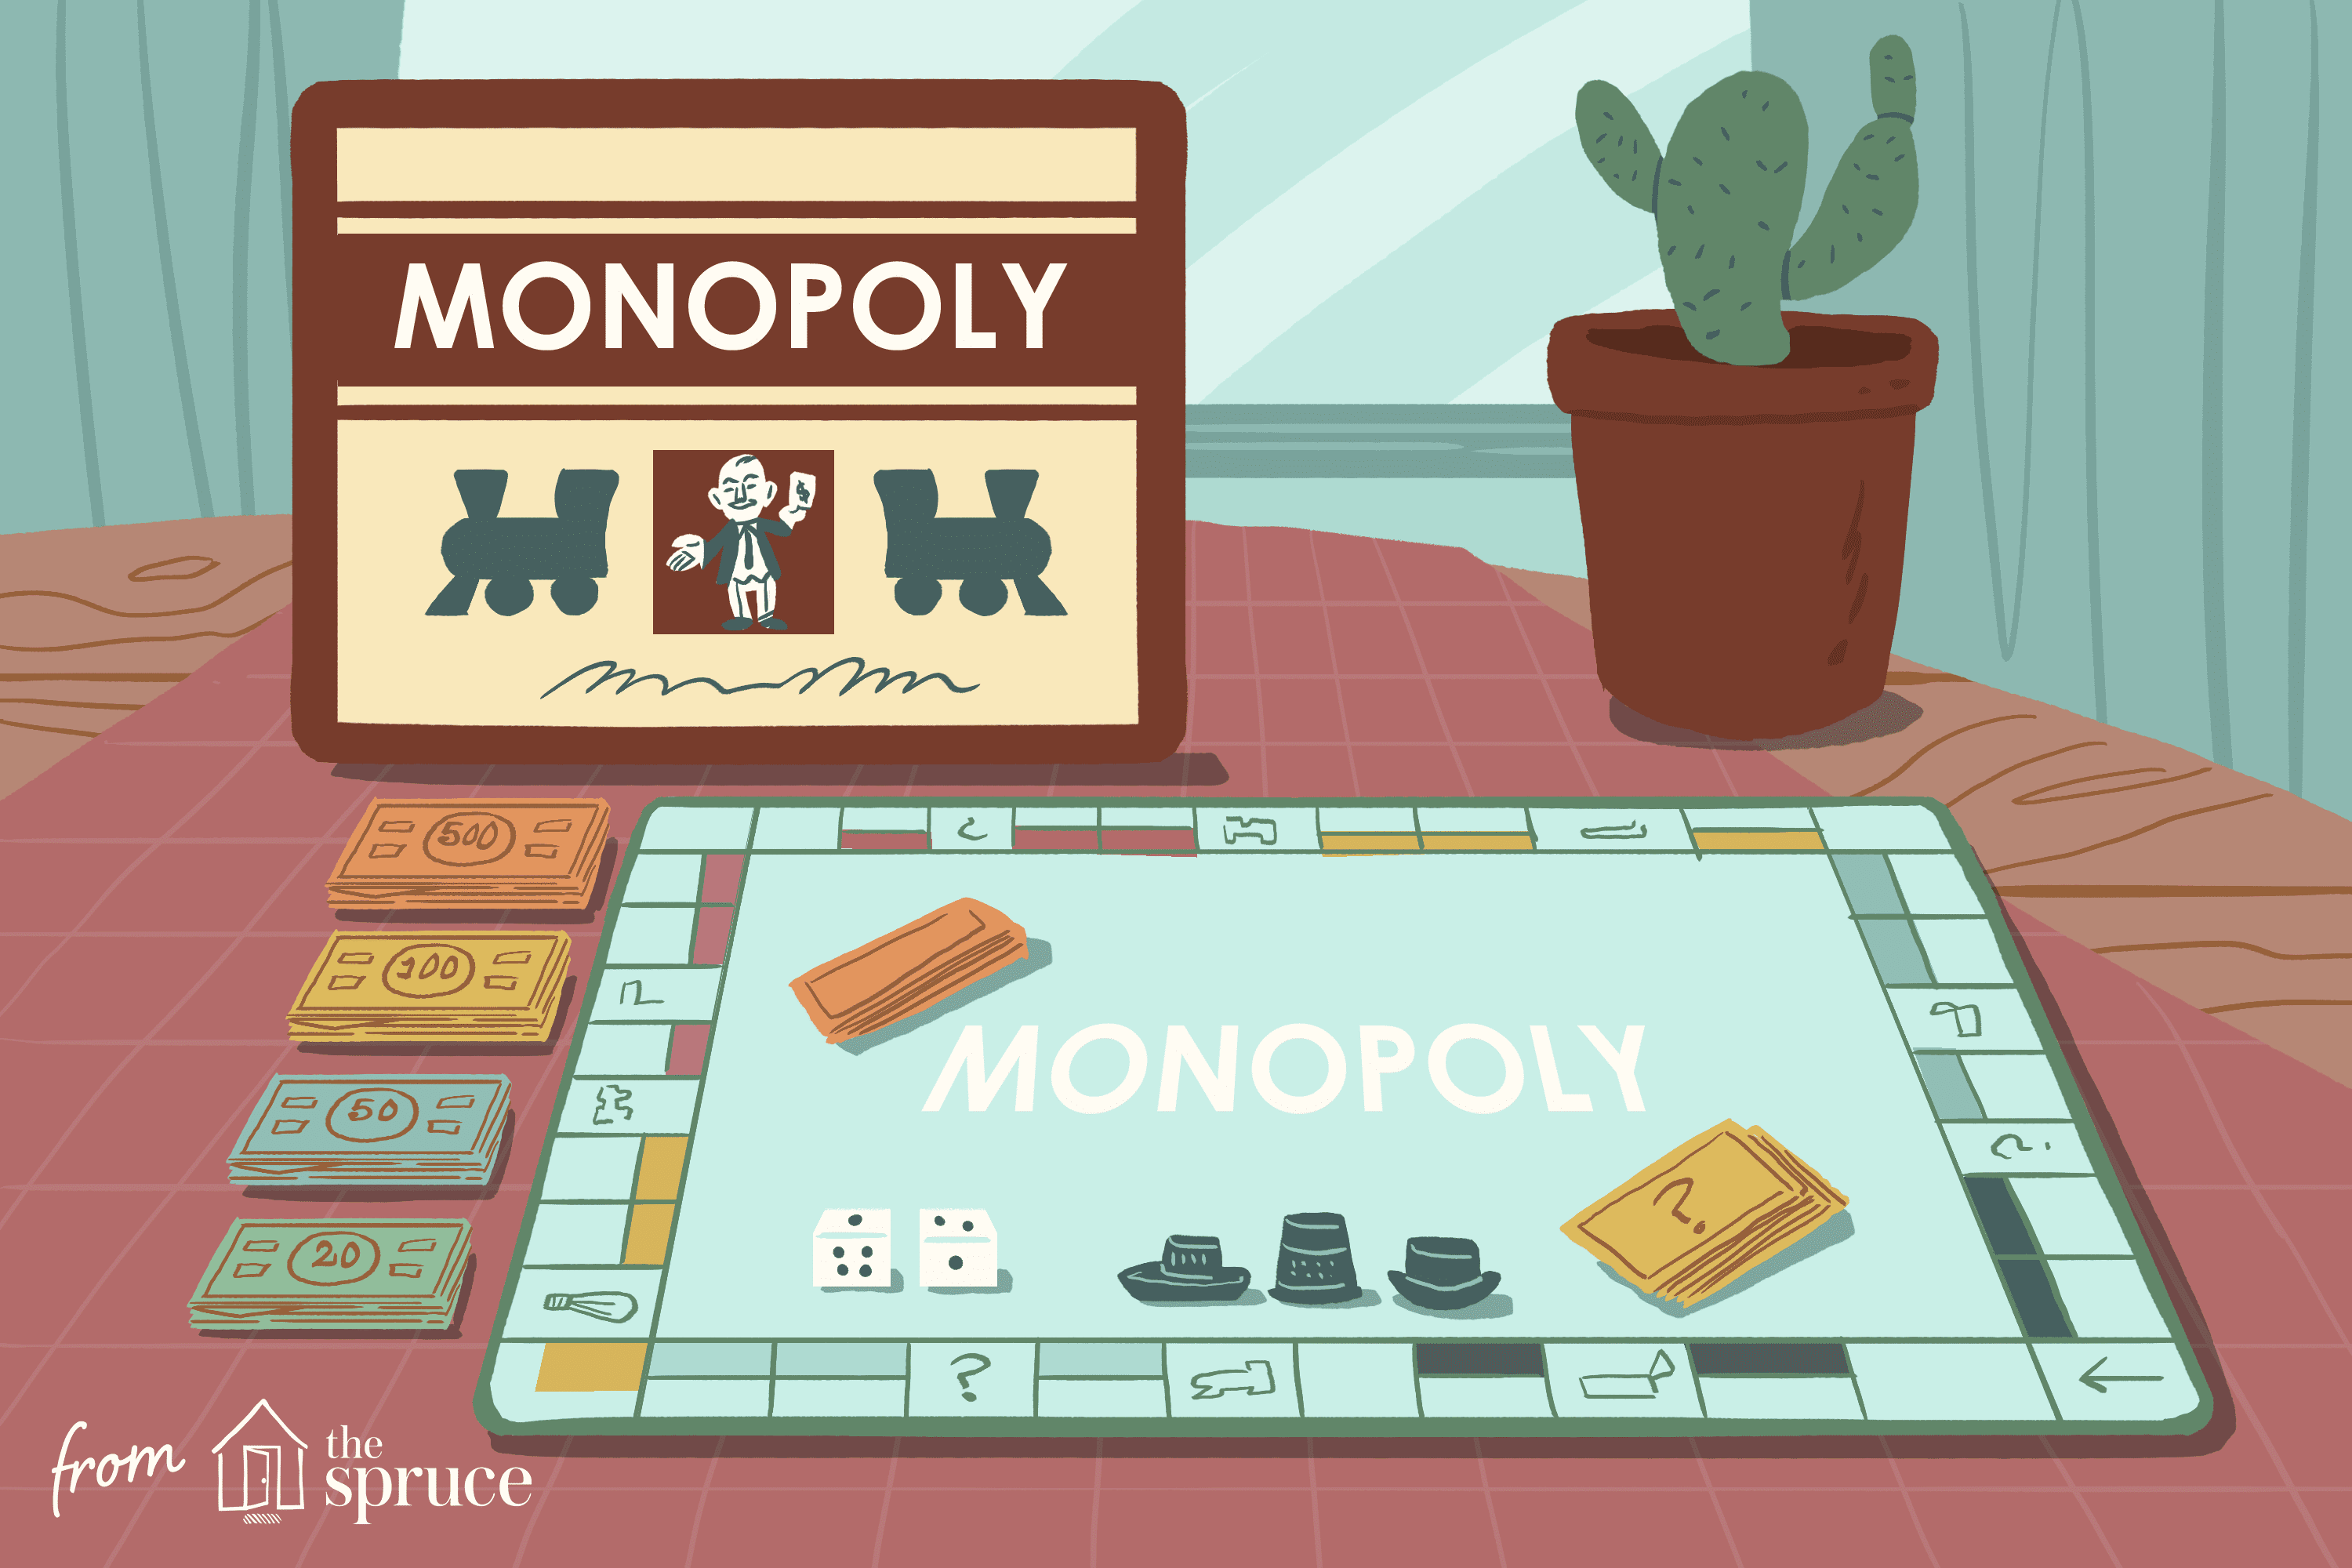 how-much-are-vintage-monopoly-games-worth-411900-Final-b72f6929a3af4f55889f10d3a1ffb568